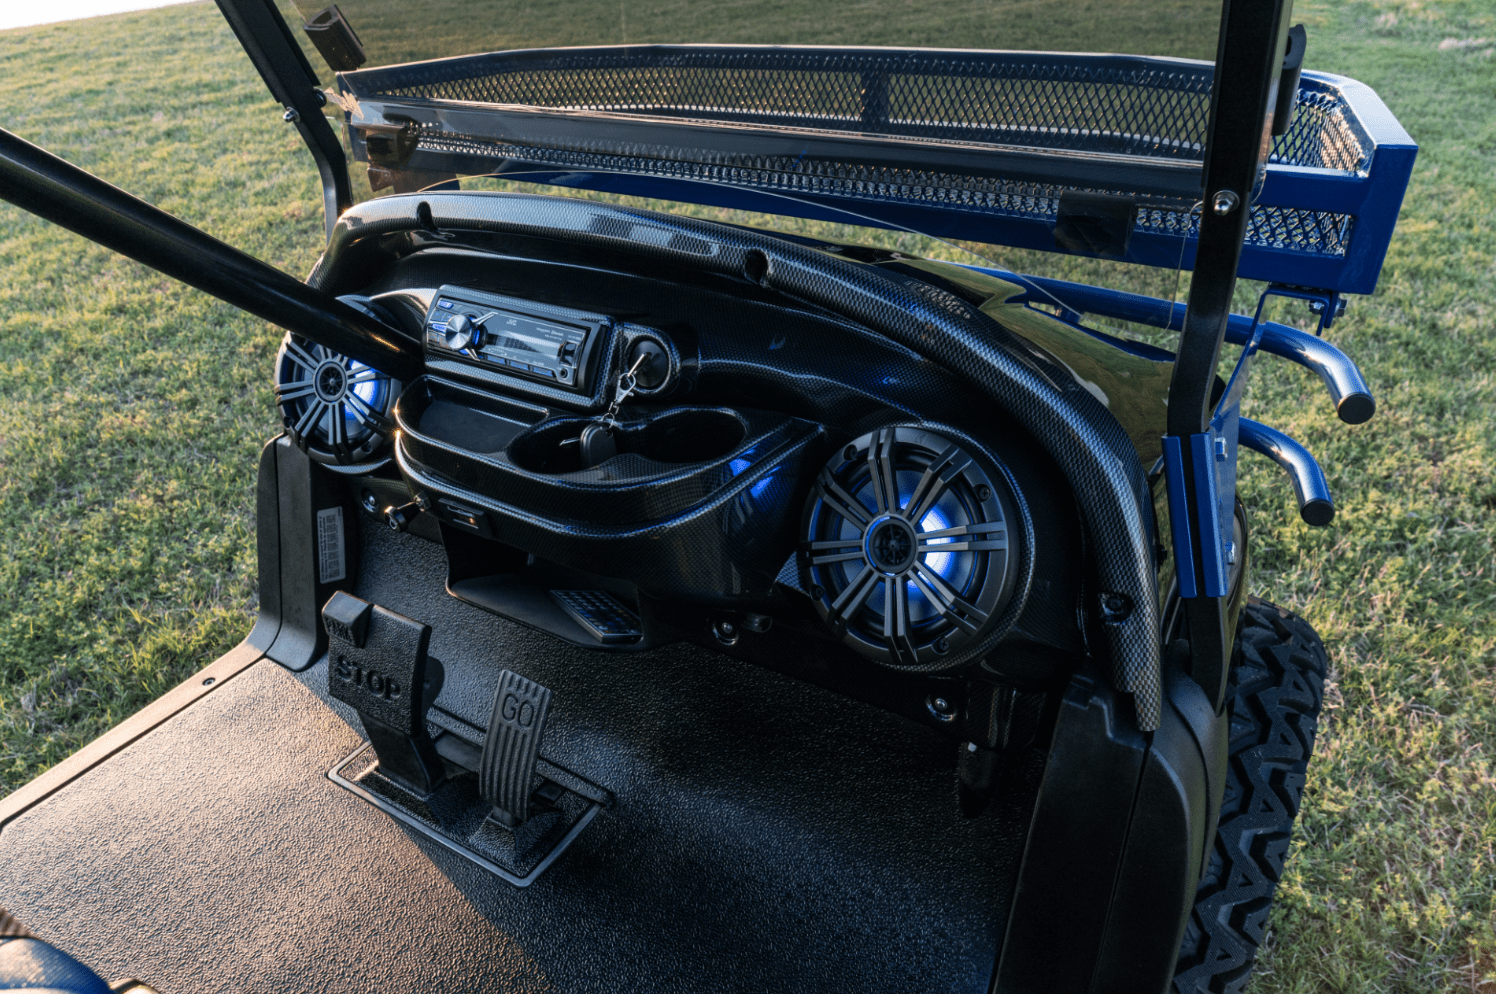 Black and Blue – Lighted Edition full